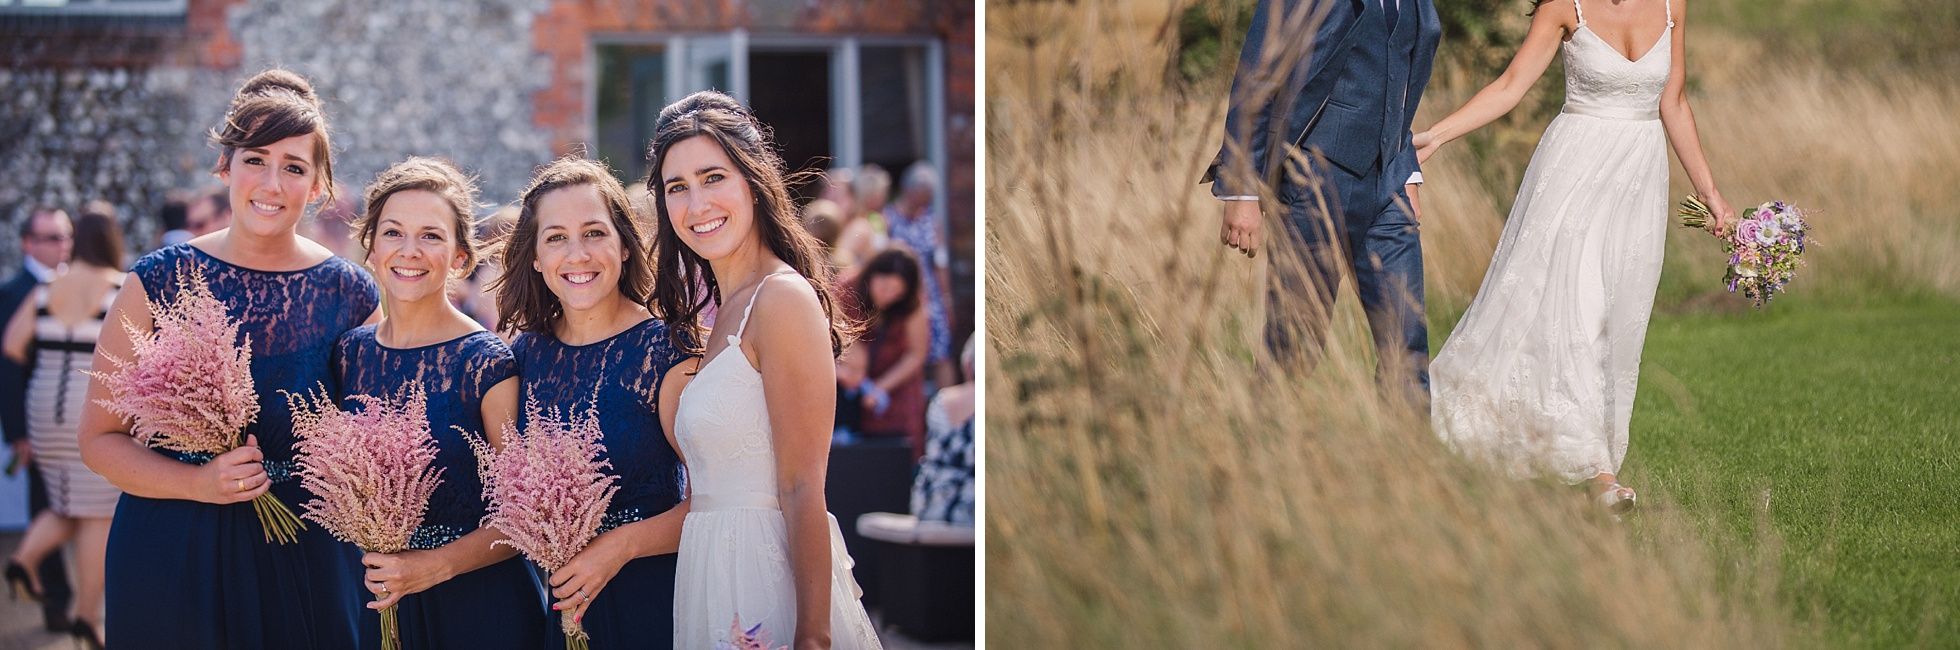 Laura and Matt's wedding at Farbridge Barns in West Sussex